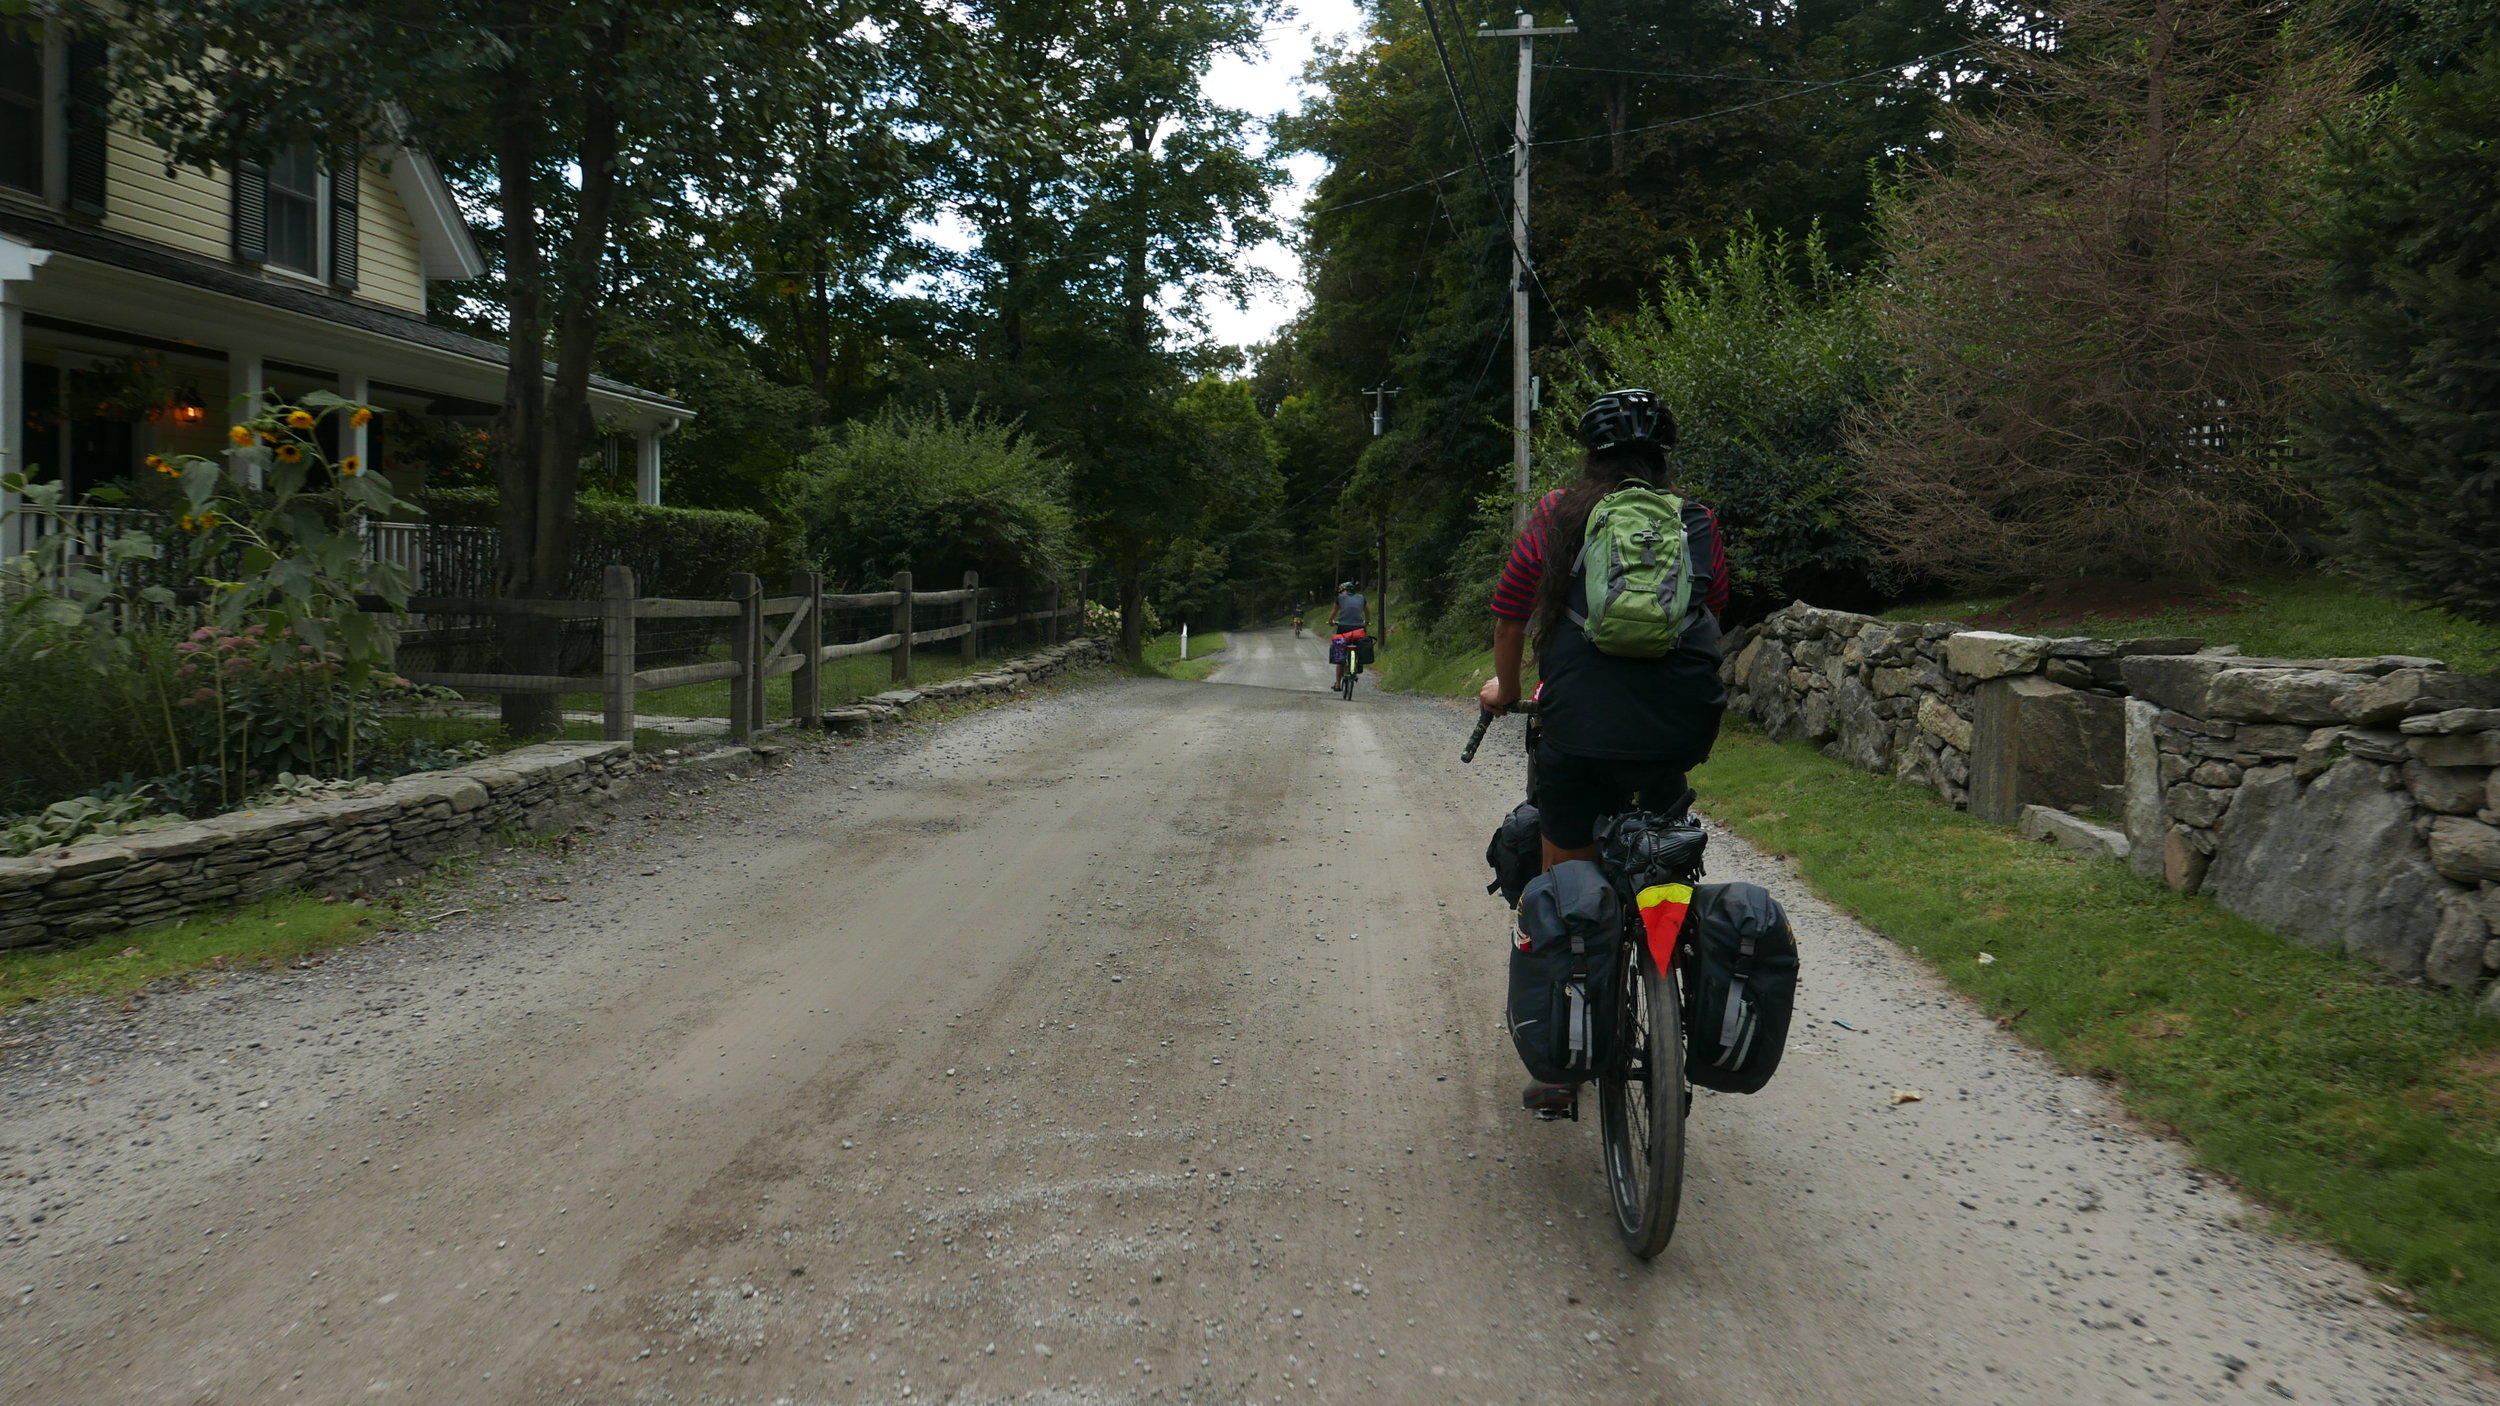 We got some gravel riding in